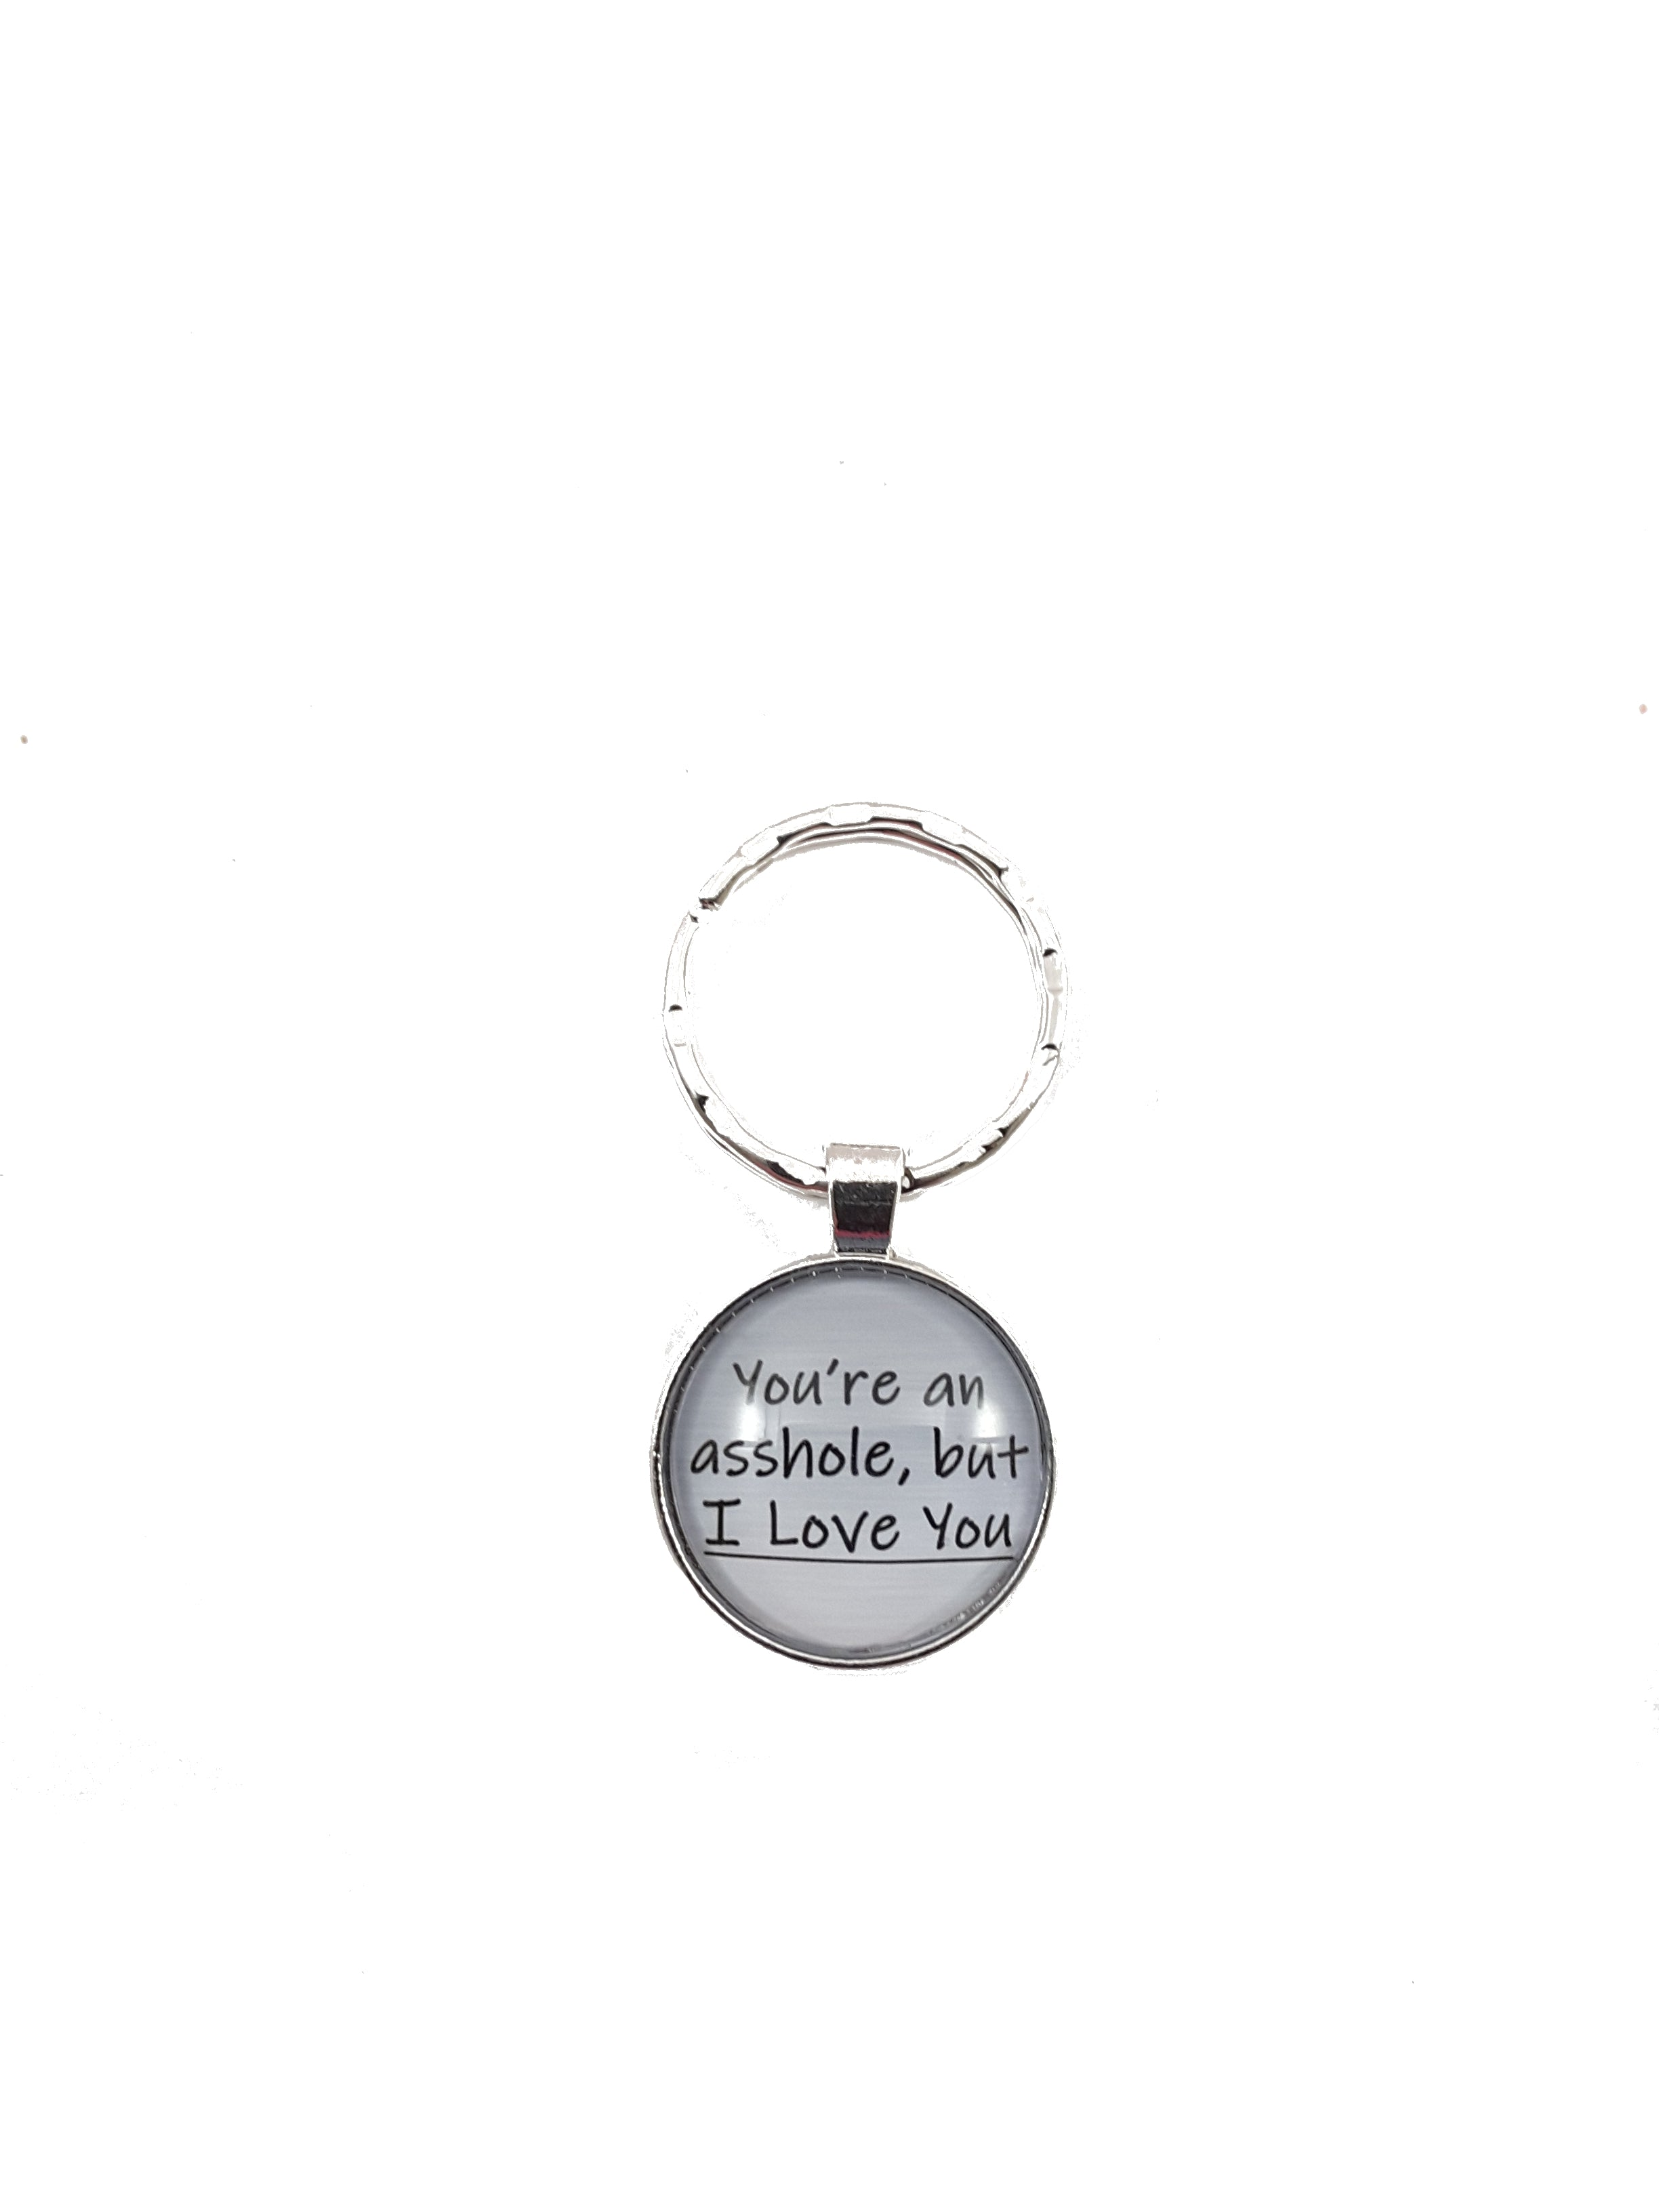 You're My Favorite Asshole KeyChain - Free Shipping! - TheLastWordBish.com